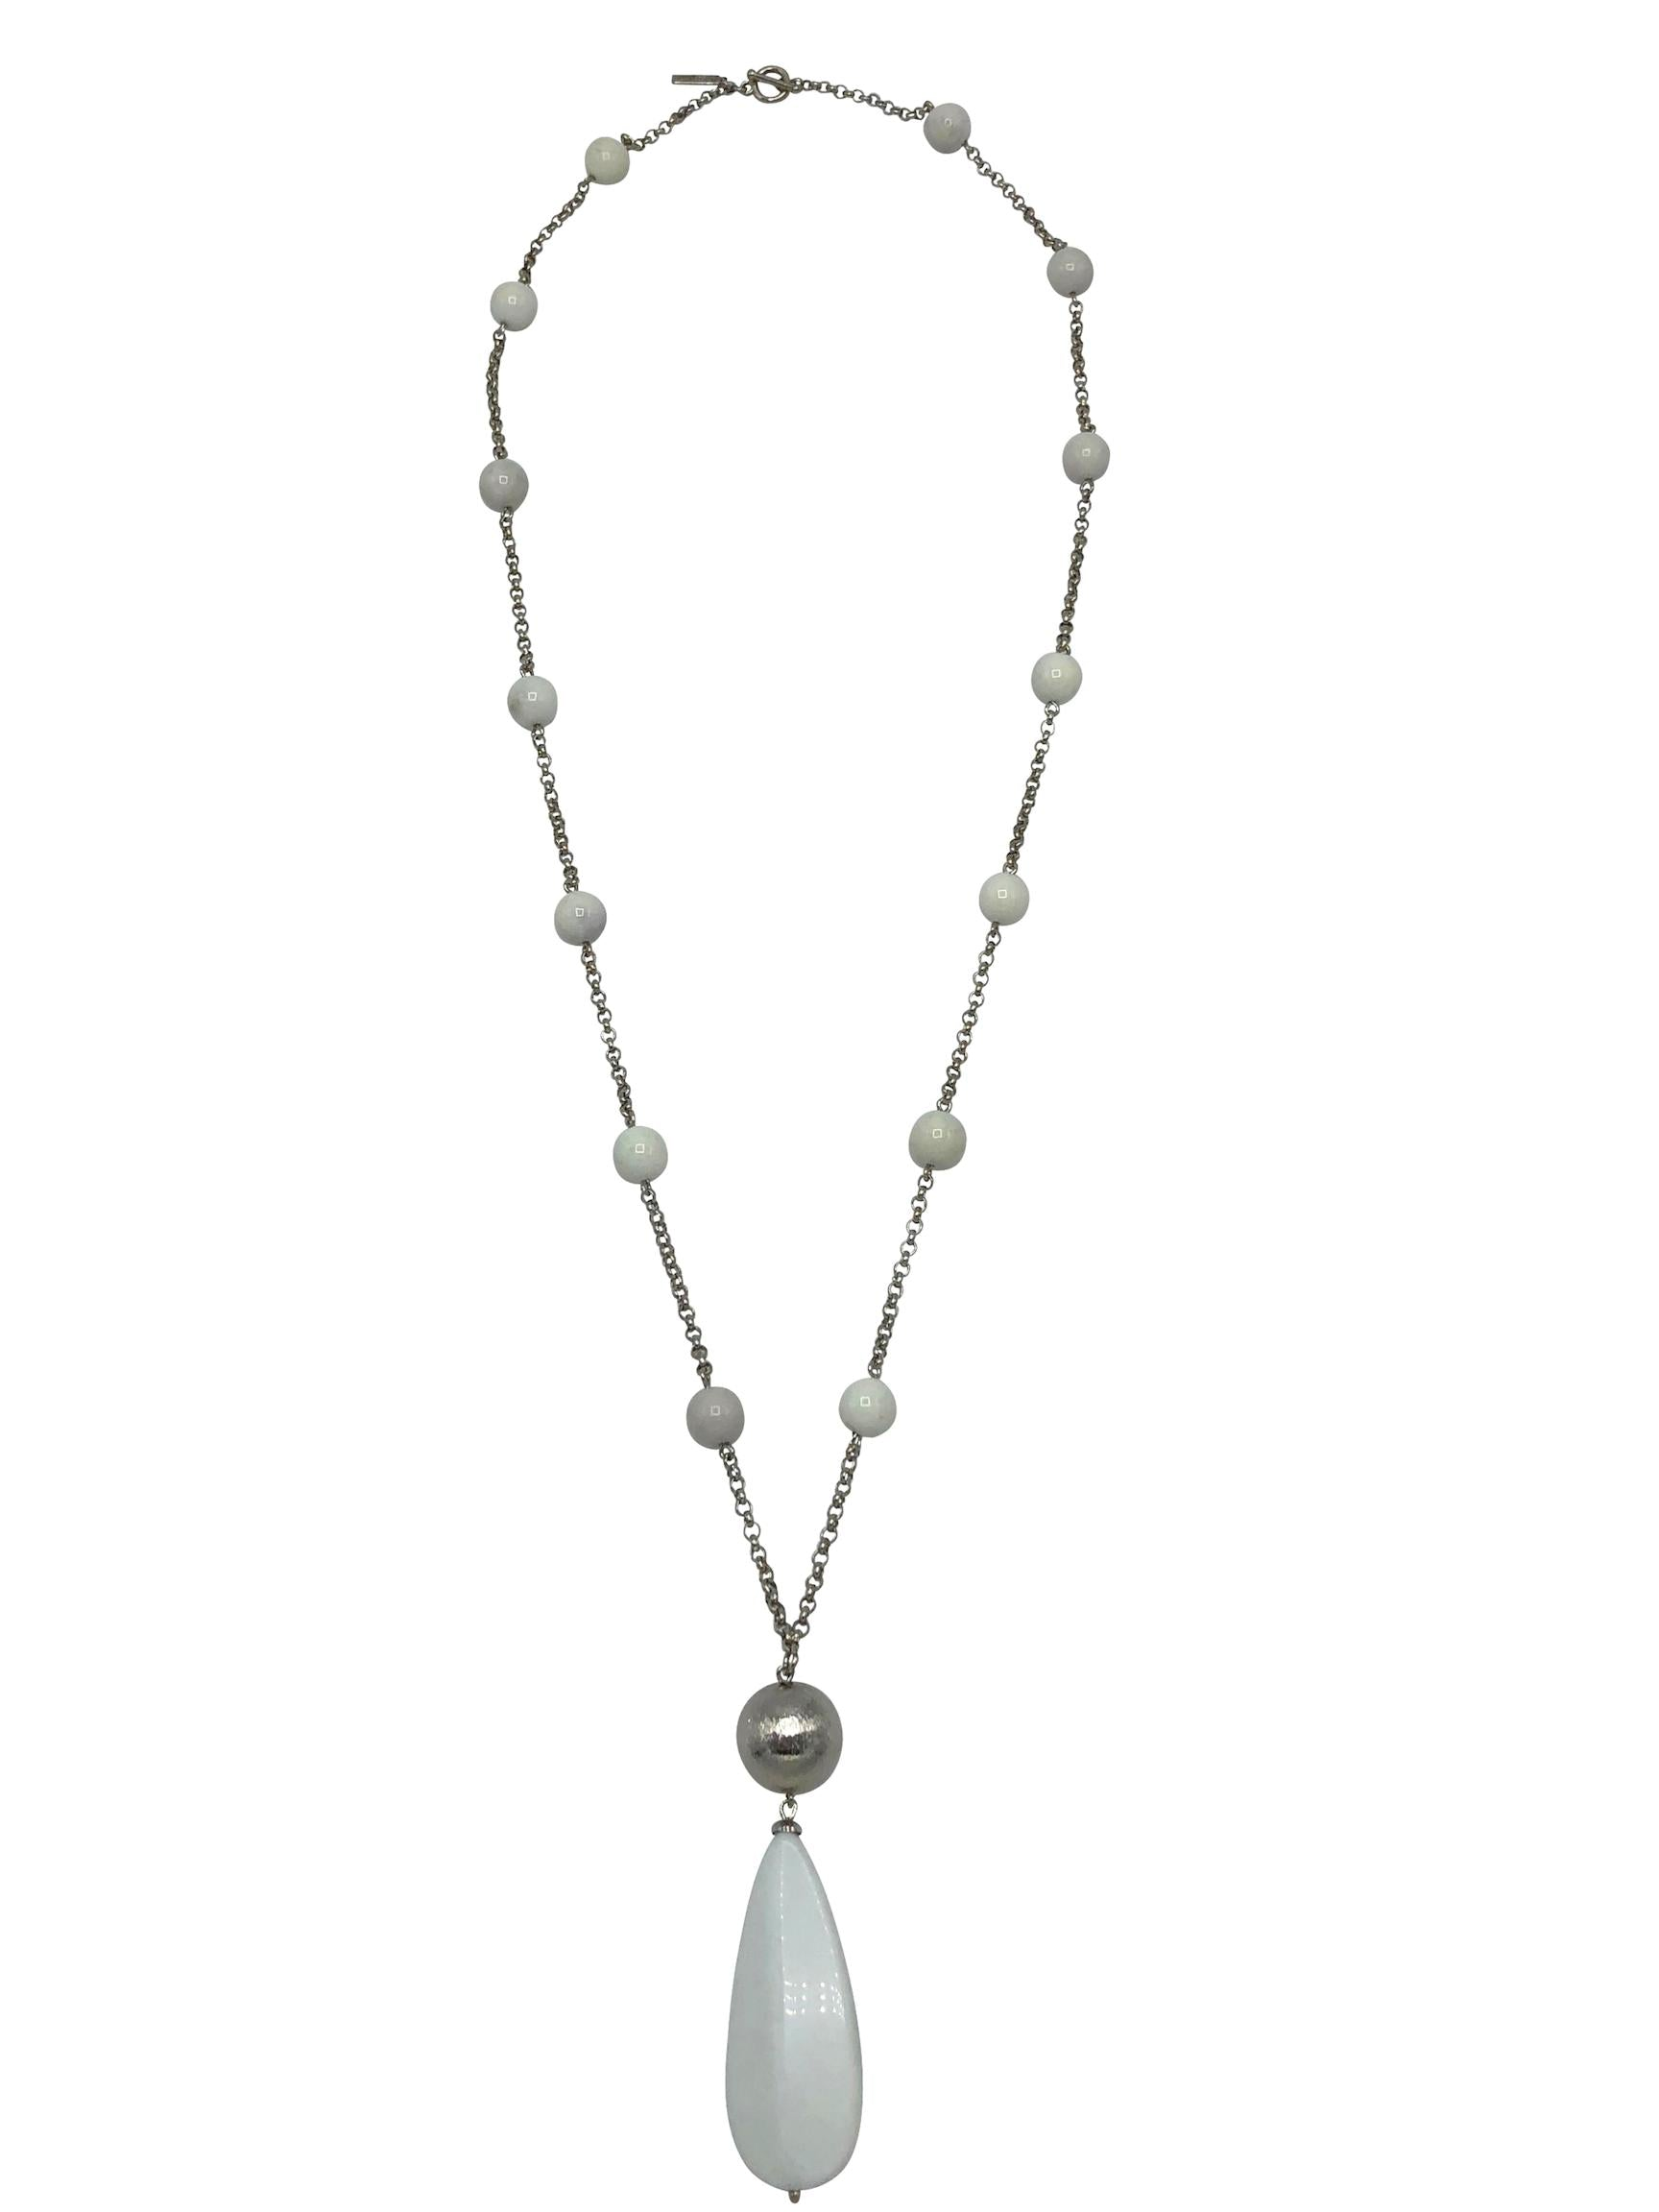 White Stone Pendulum Necklace-Necklaces-JAREDJAMIN Jewelry Online-JARED JAMIN